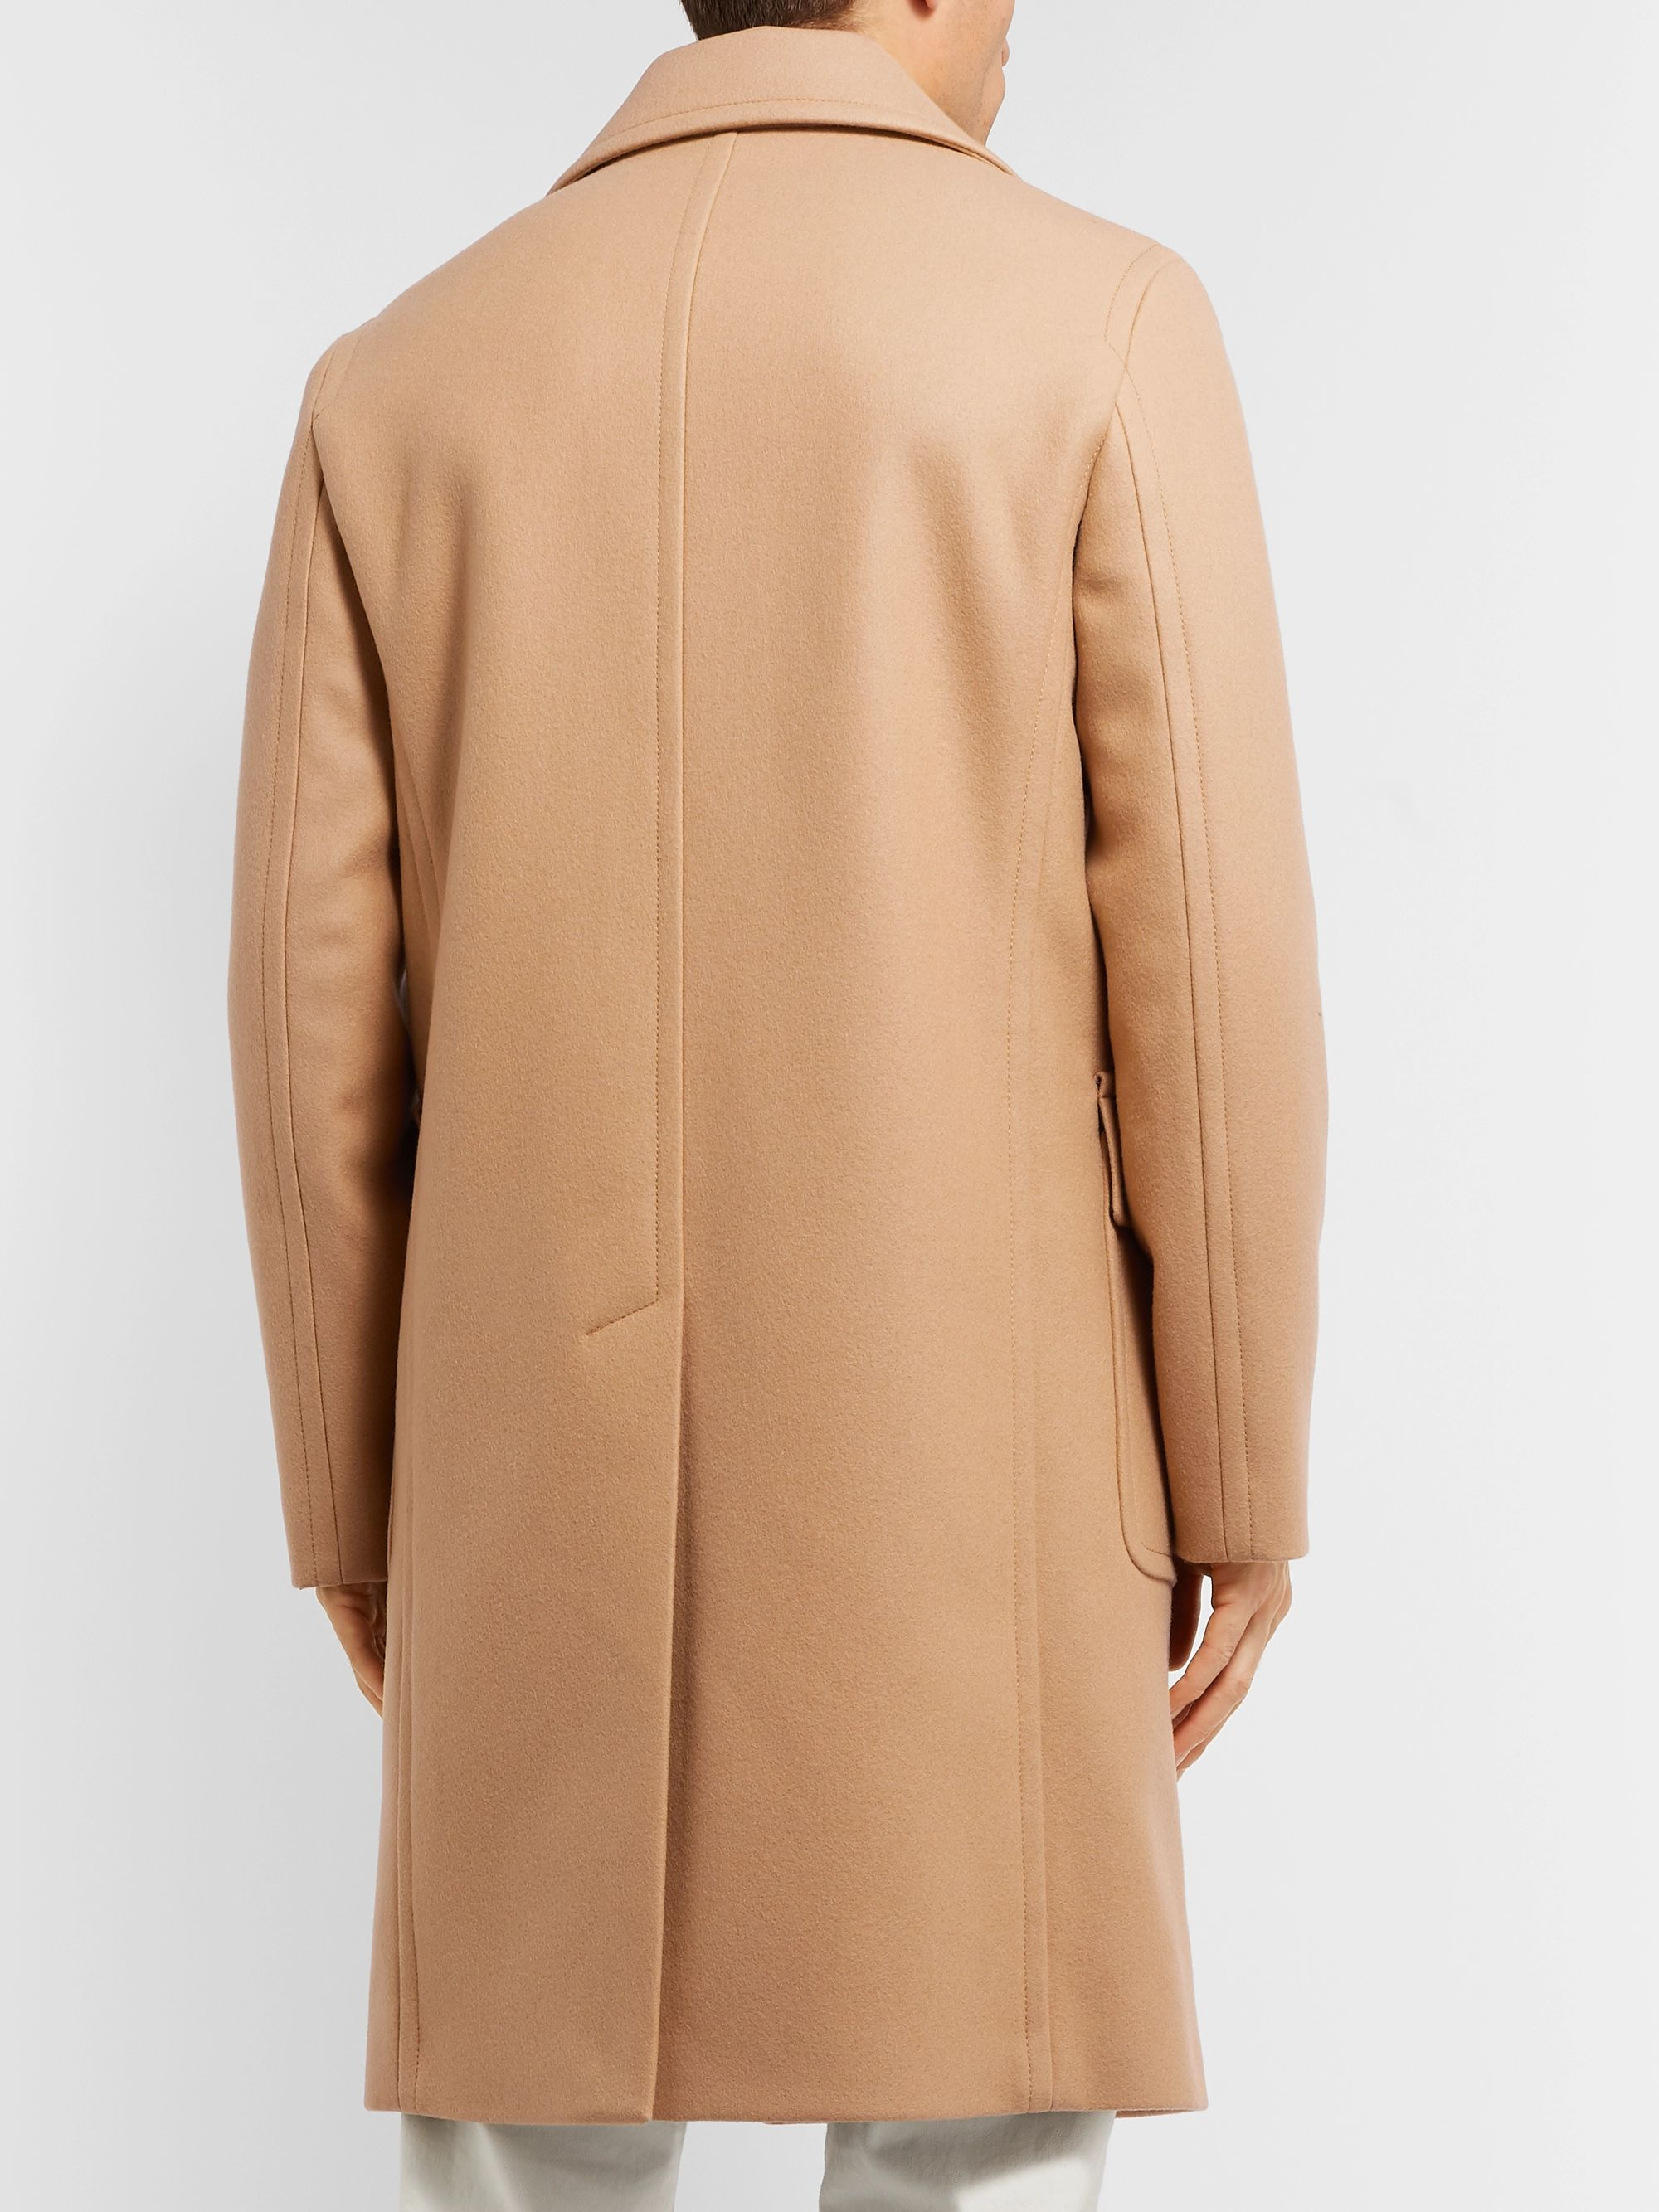 Mr P. Oversized Double-Breasted Virgin Wool Coat